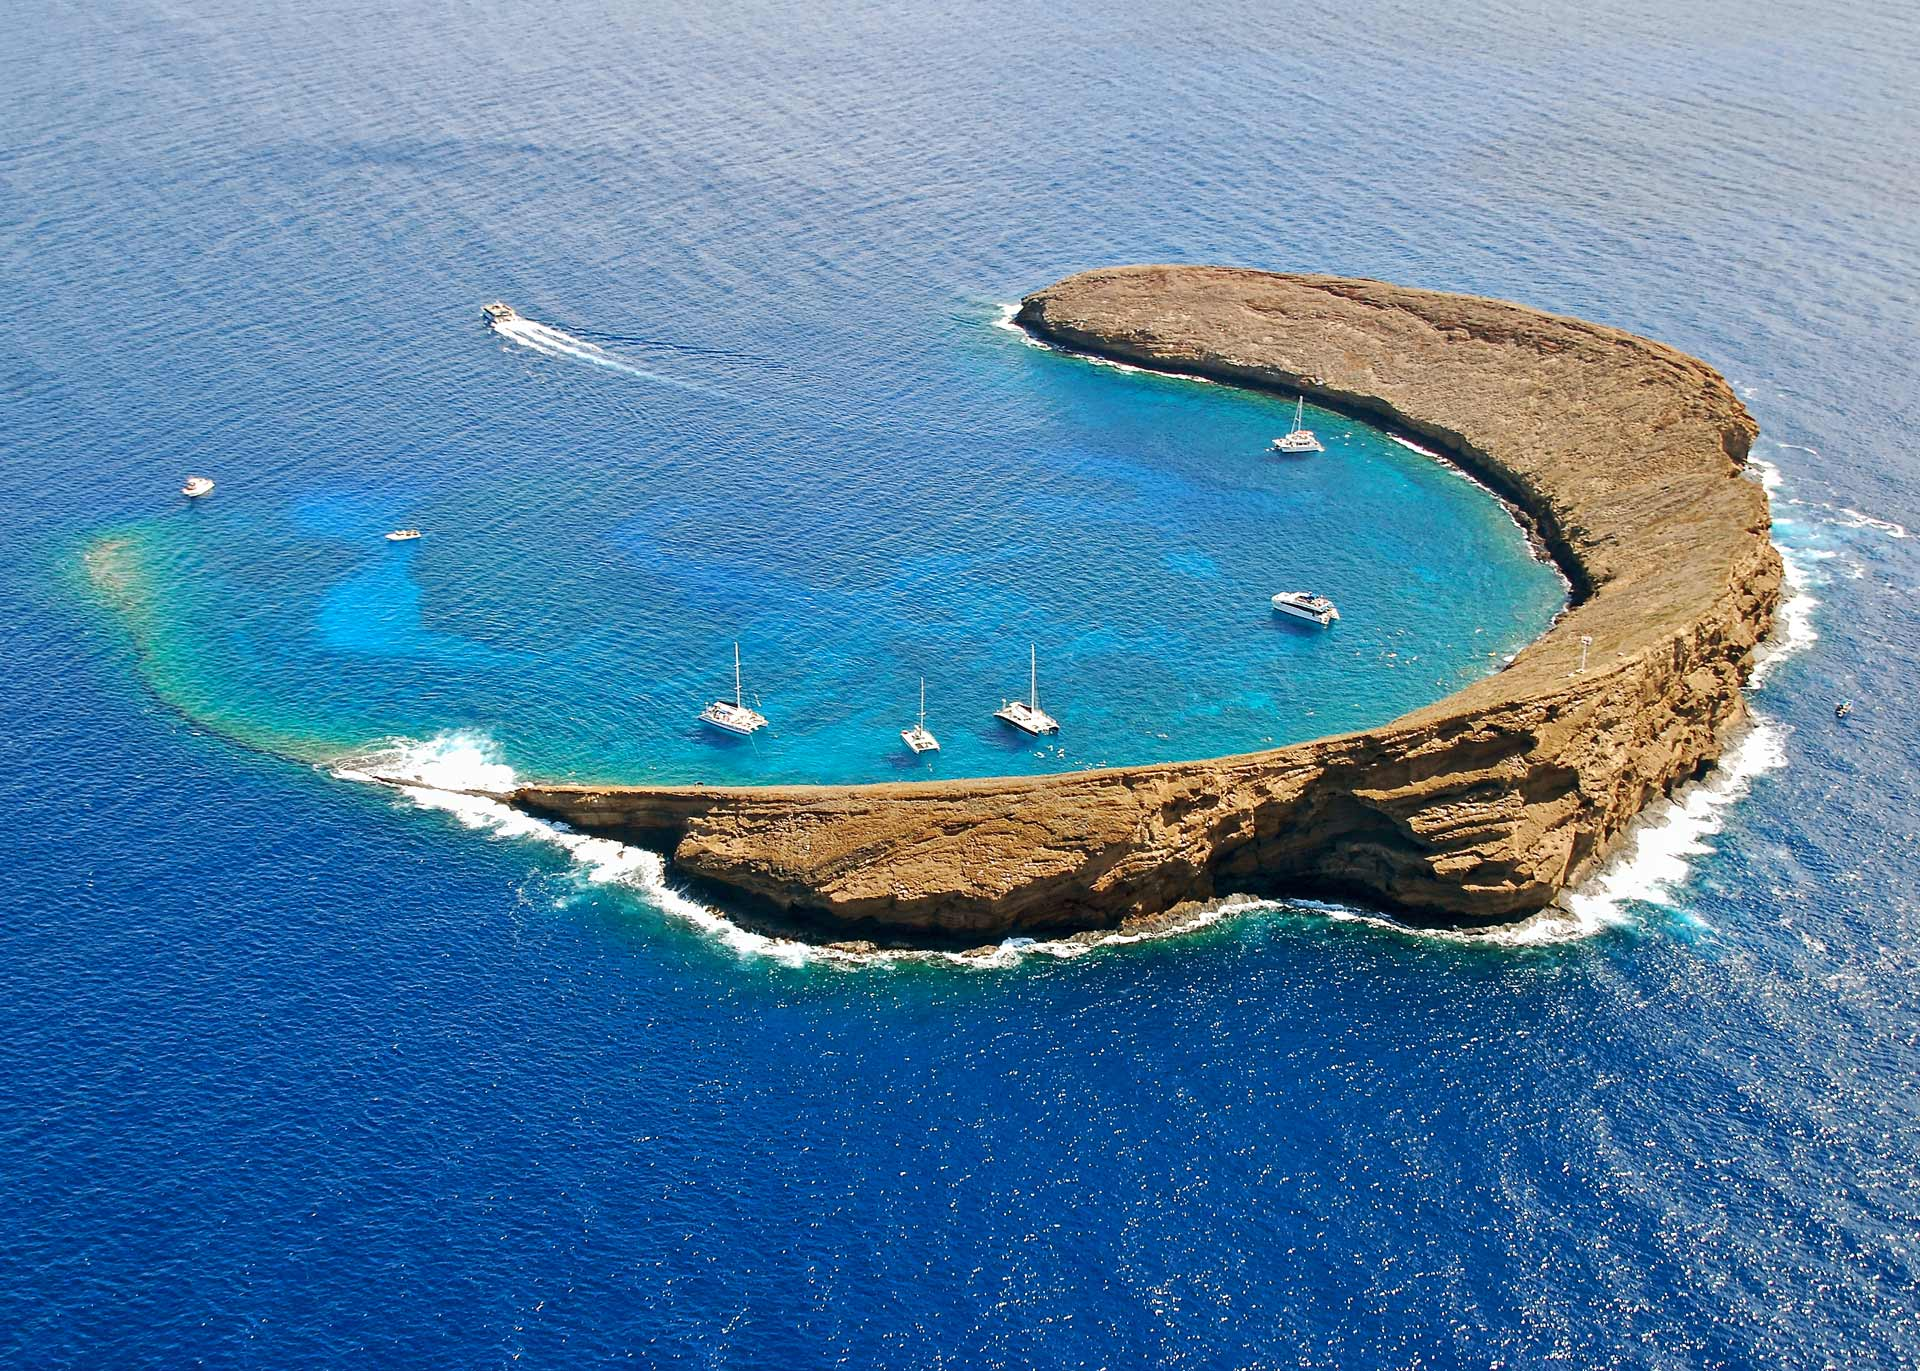 bird's eye photography of c-formed island